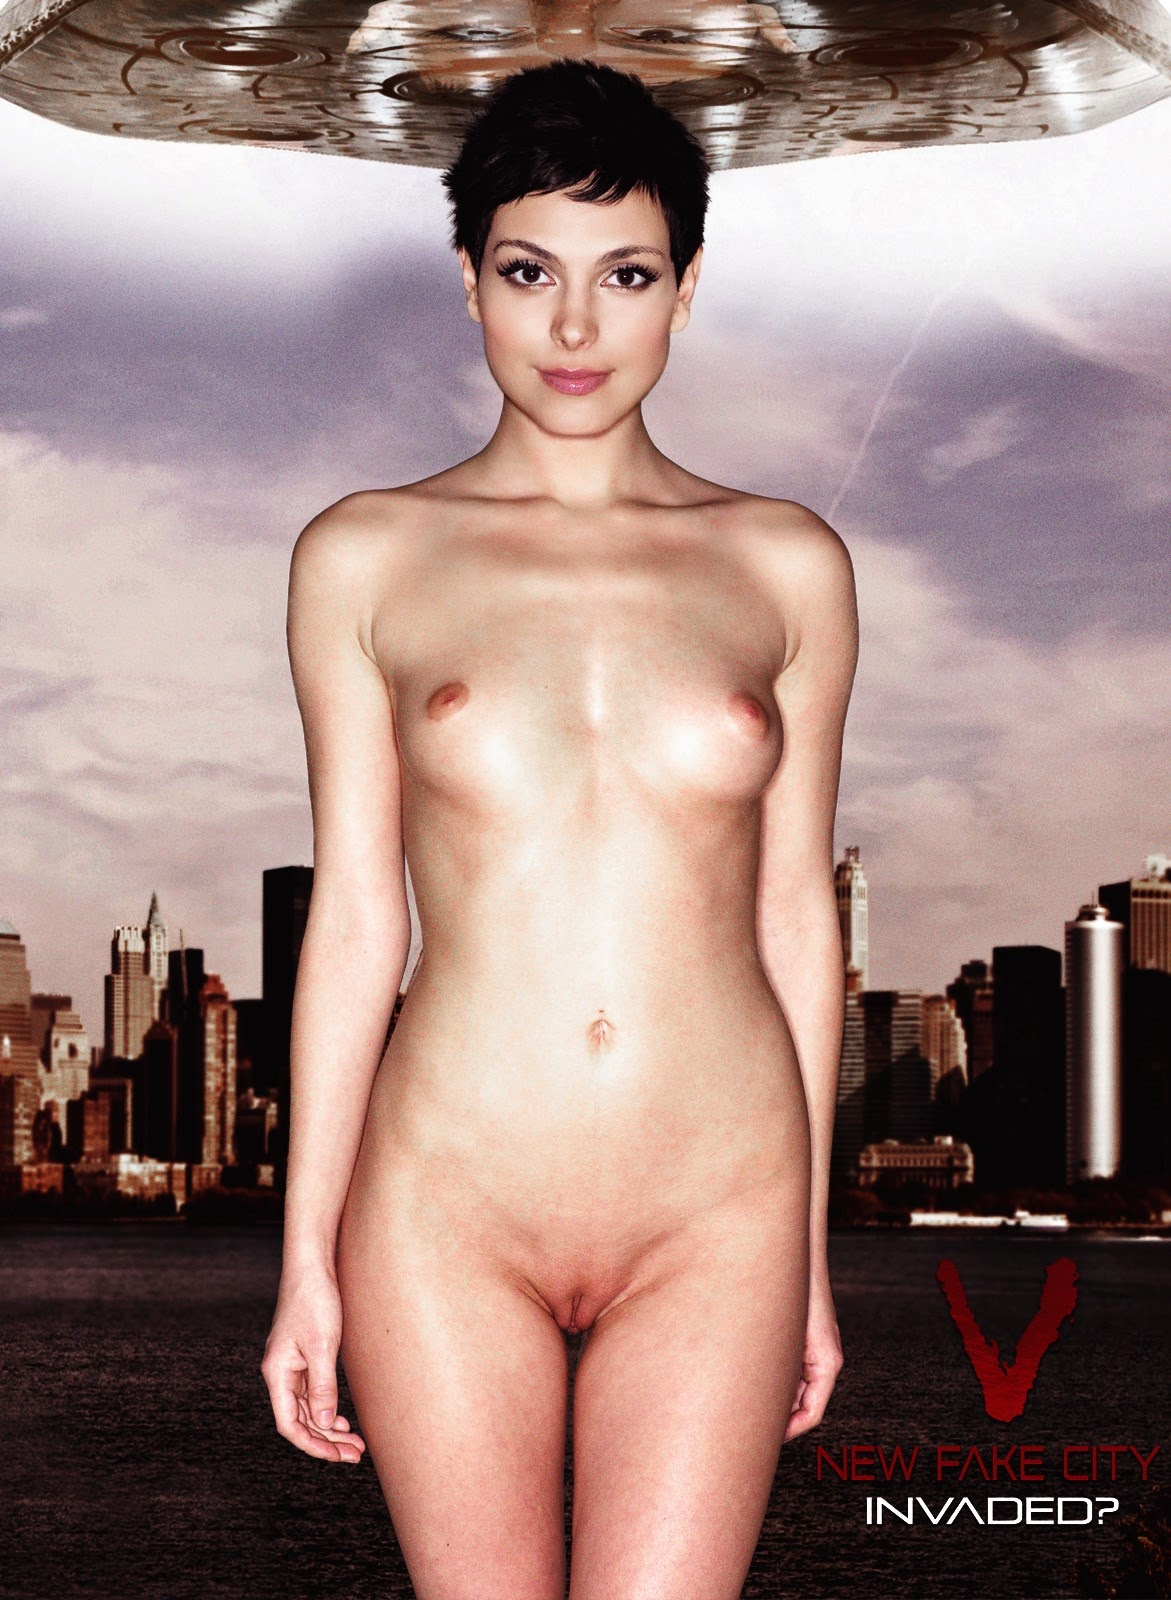 Denise milani nude photo